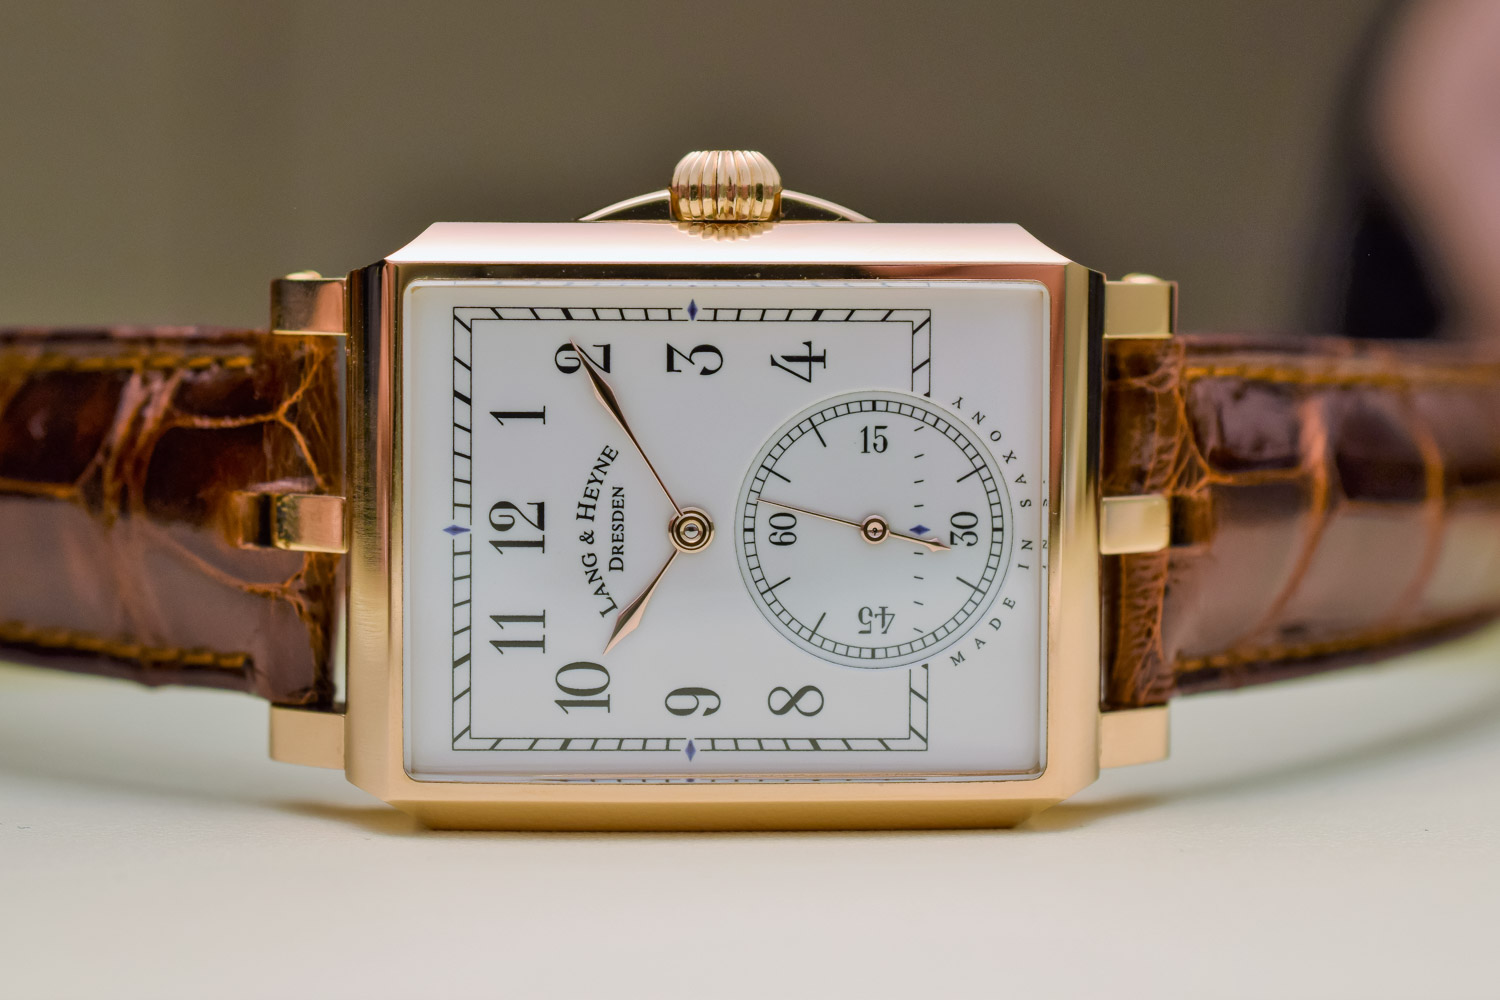 dsc product filled watches birth watch gold rectangular elgin year lord